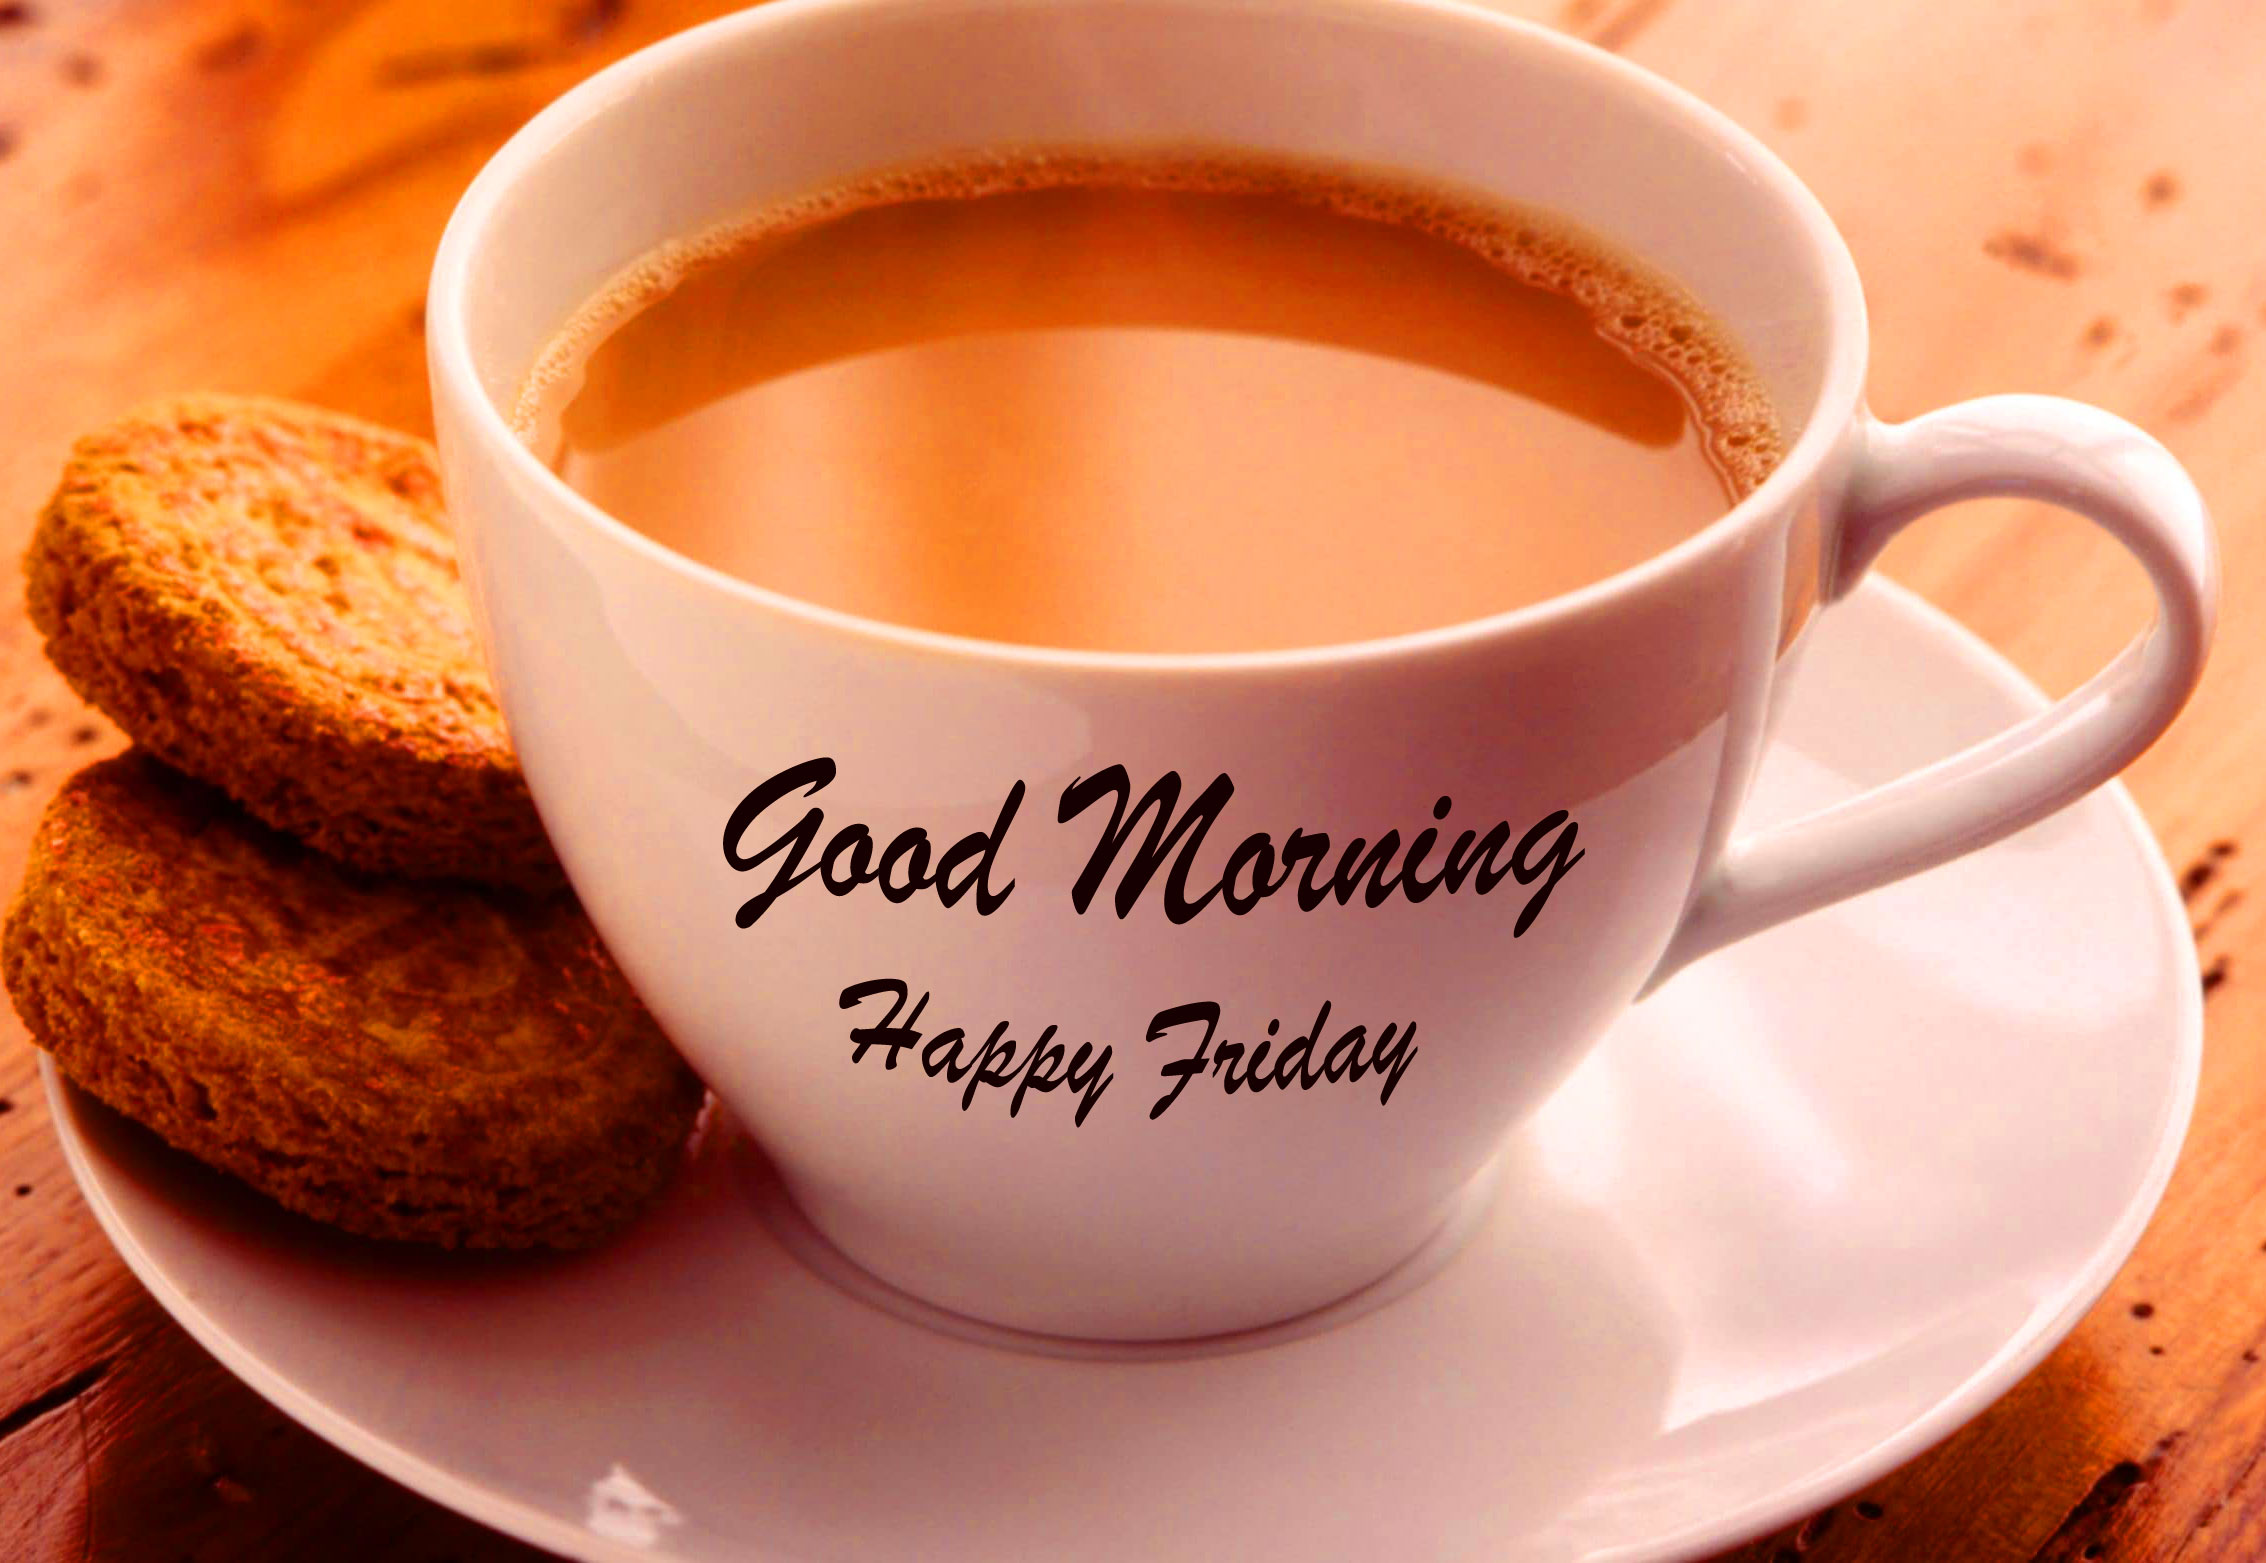 Tea with Snacks and Good Morning Happy Friday Wish